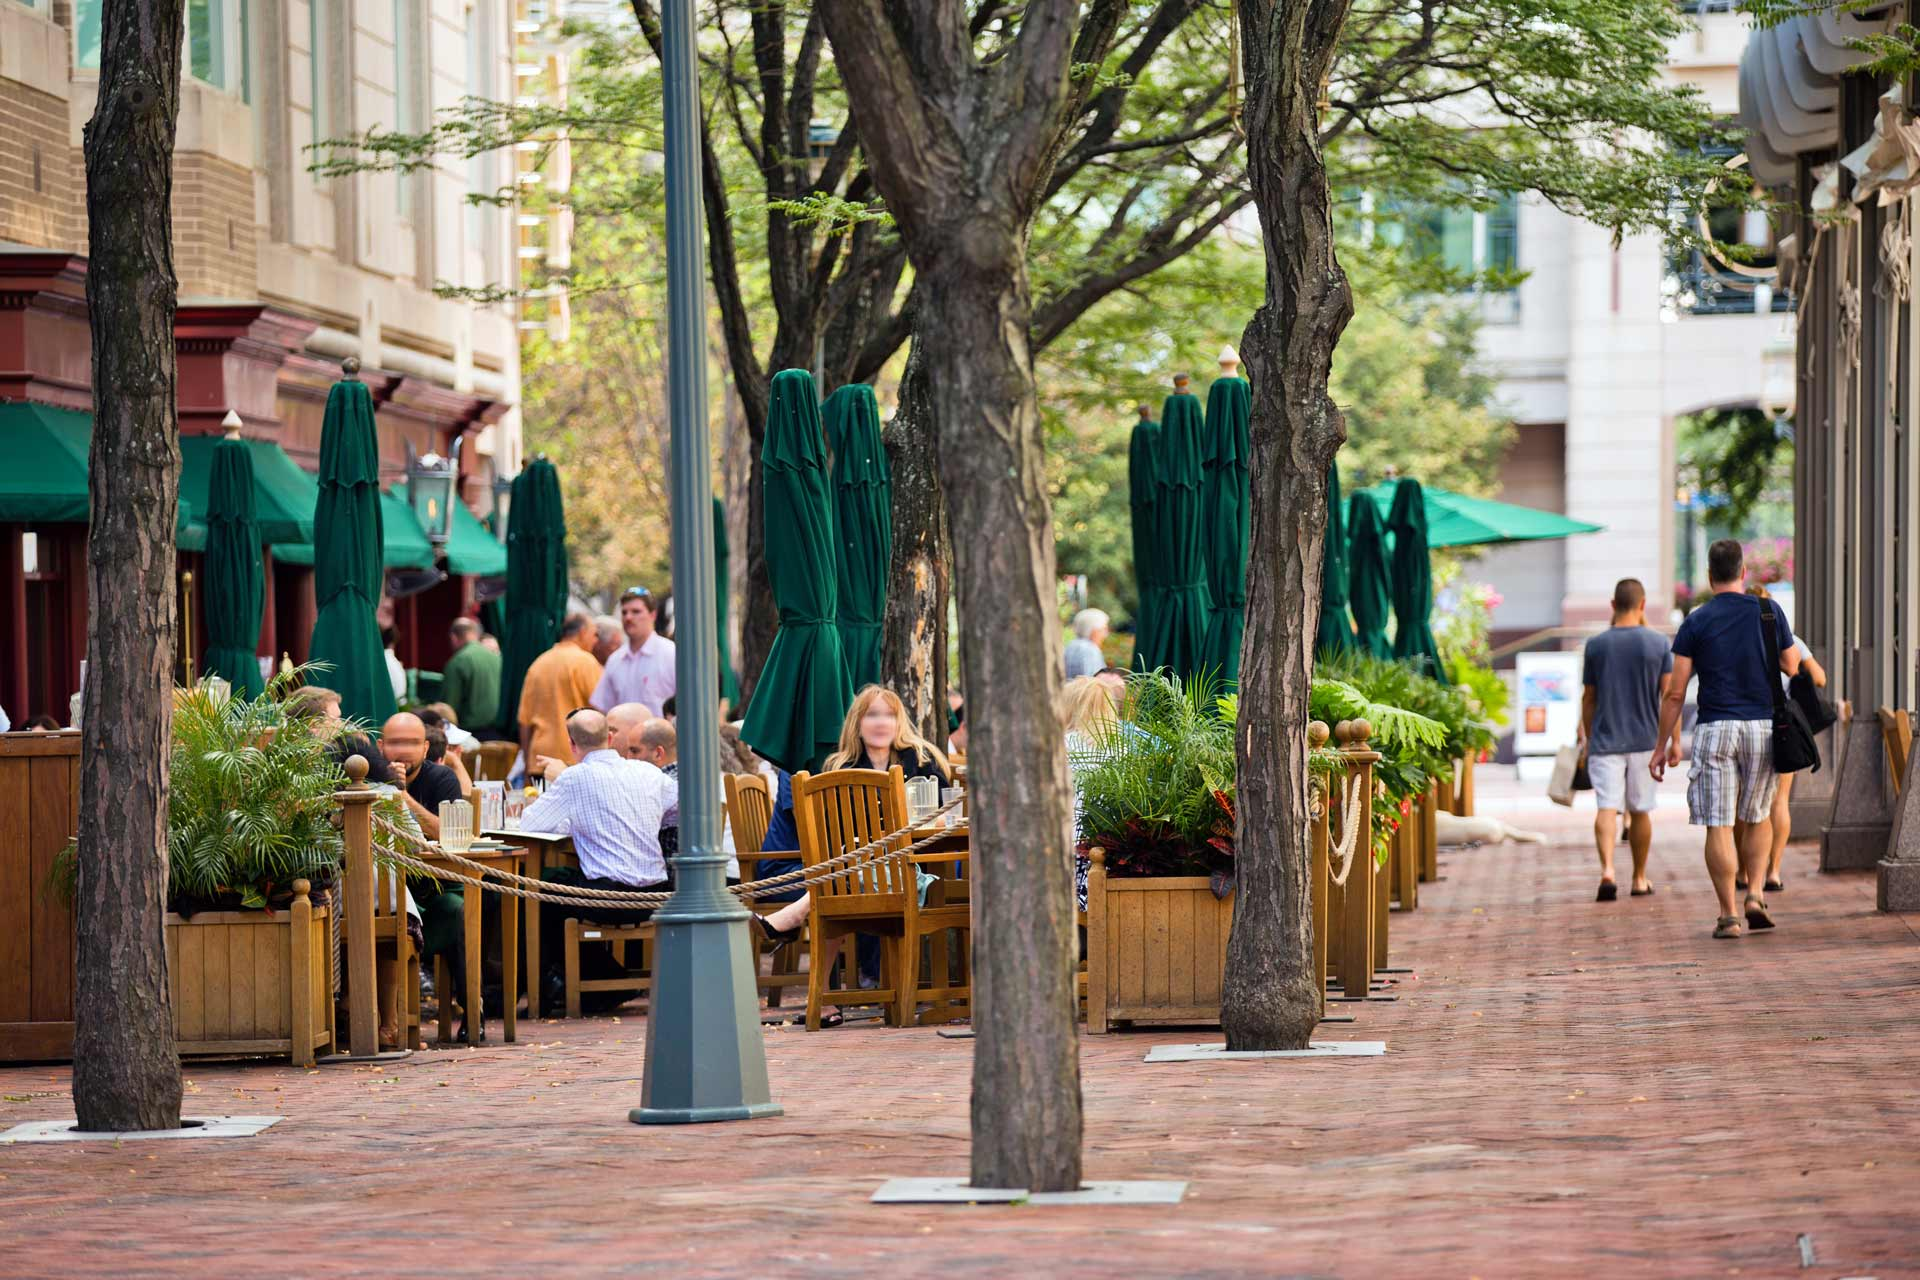 Brick sidewalks and large trees with Clyde's outdoor dining in background